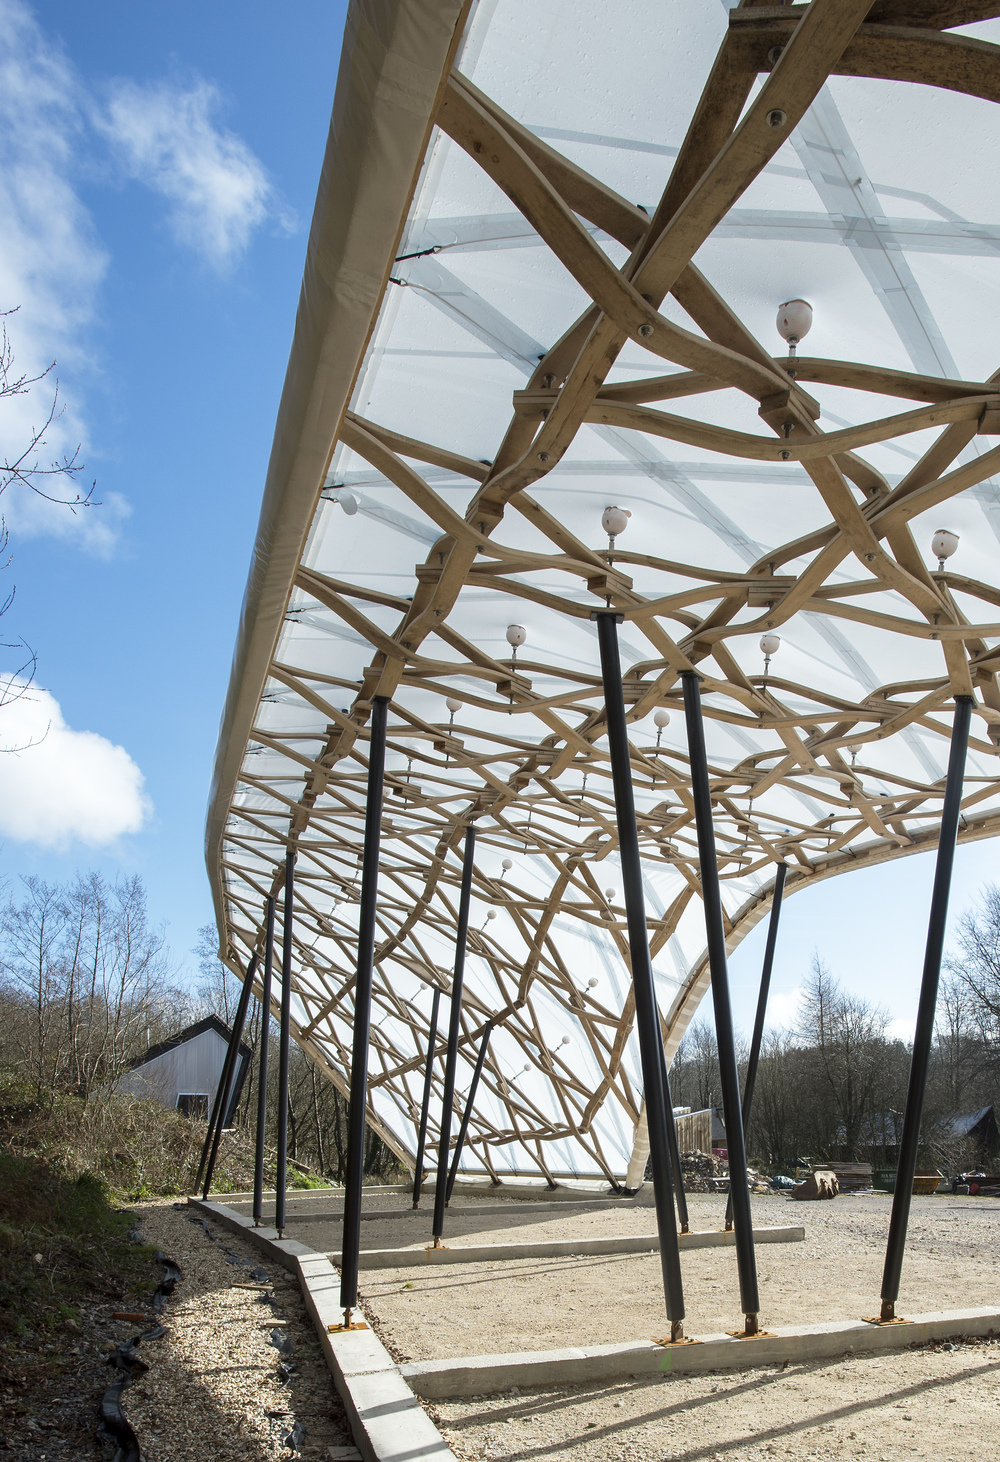 Hooke_Park_Design_&_Make_Timber_Seasoning_Shelter_©Valerie_Bennett_2014_02_22_0109.jpg